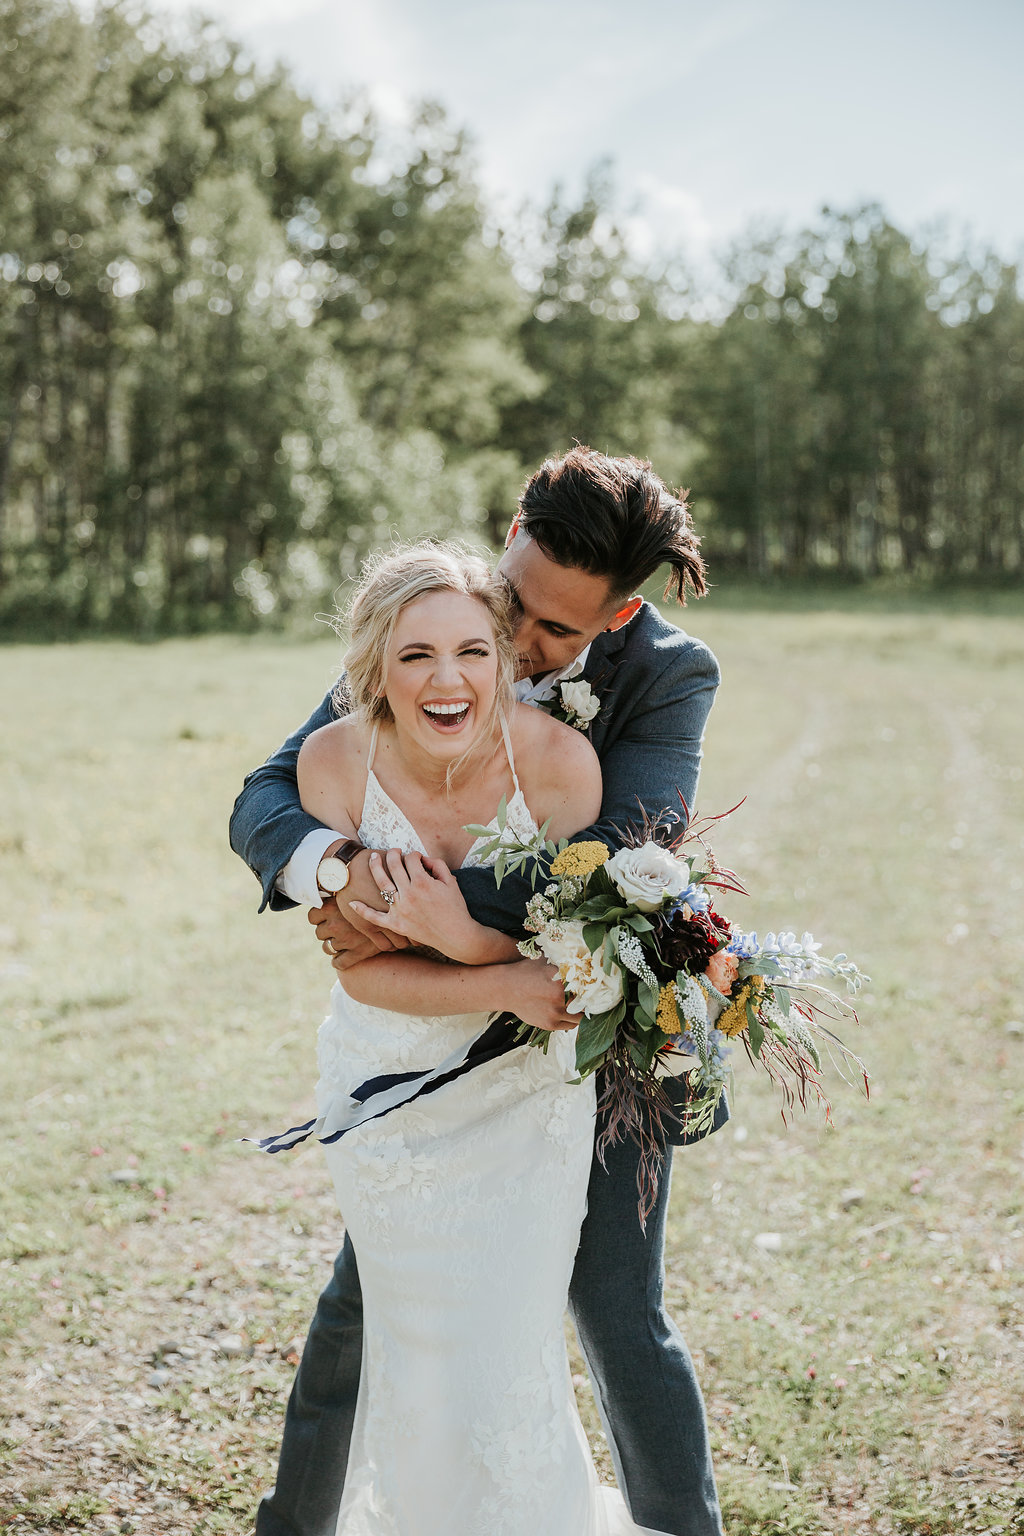 Intimate Farmyard Wedding Inspiration // Eclectic and Vintage Elopement Dripping With Jewel-Toned Decor - Bronte Bride